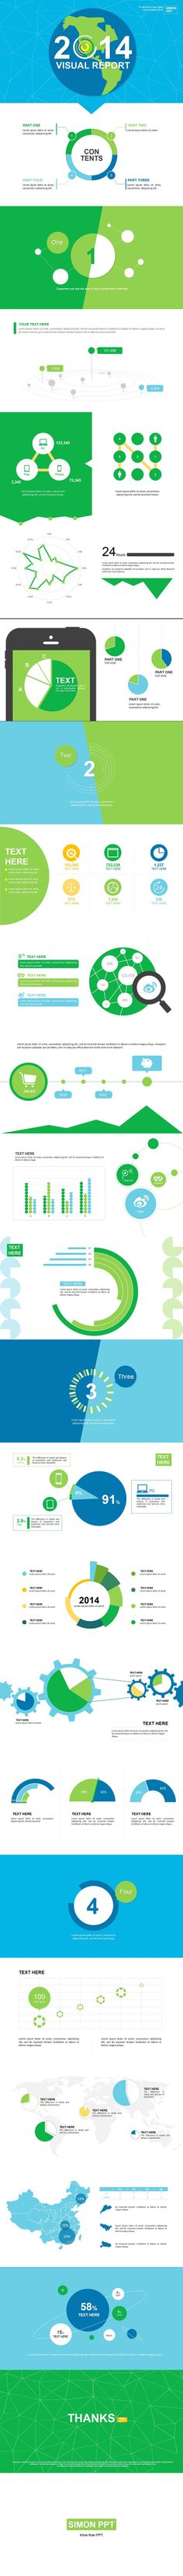 Massive Business Presentation Template u2014 Powerpoint PPT - powerpoint presentations template